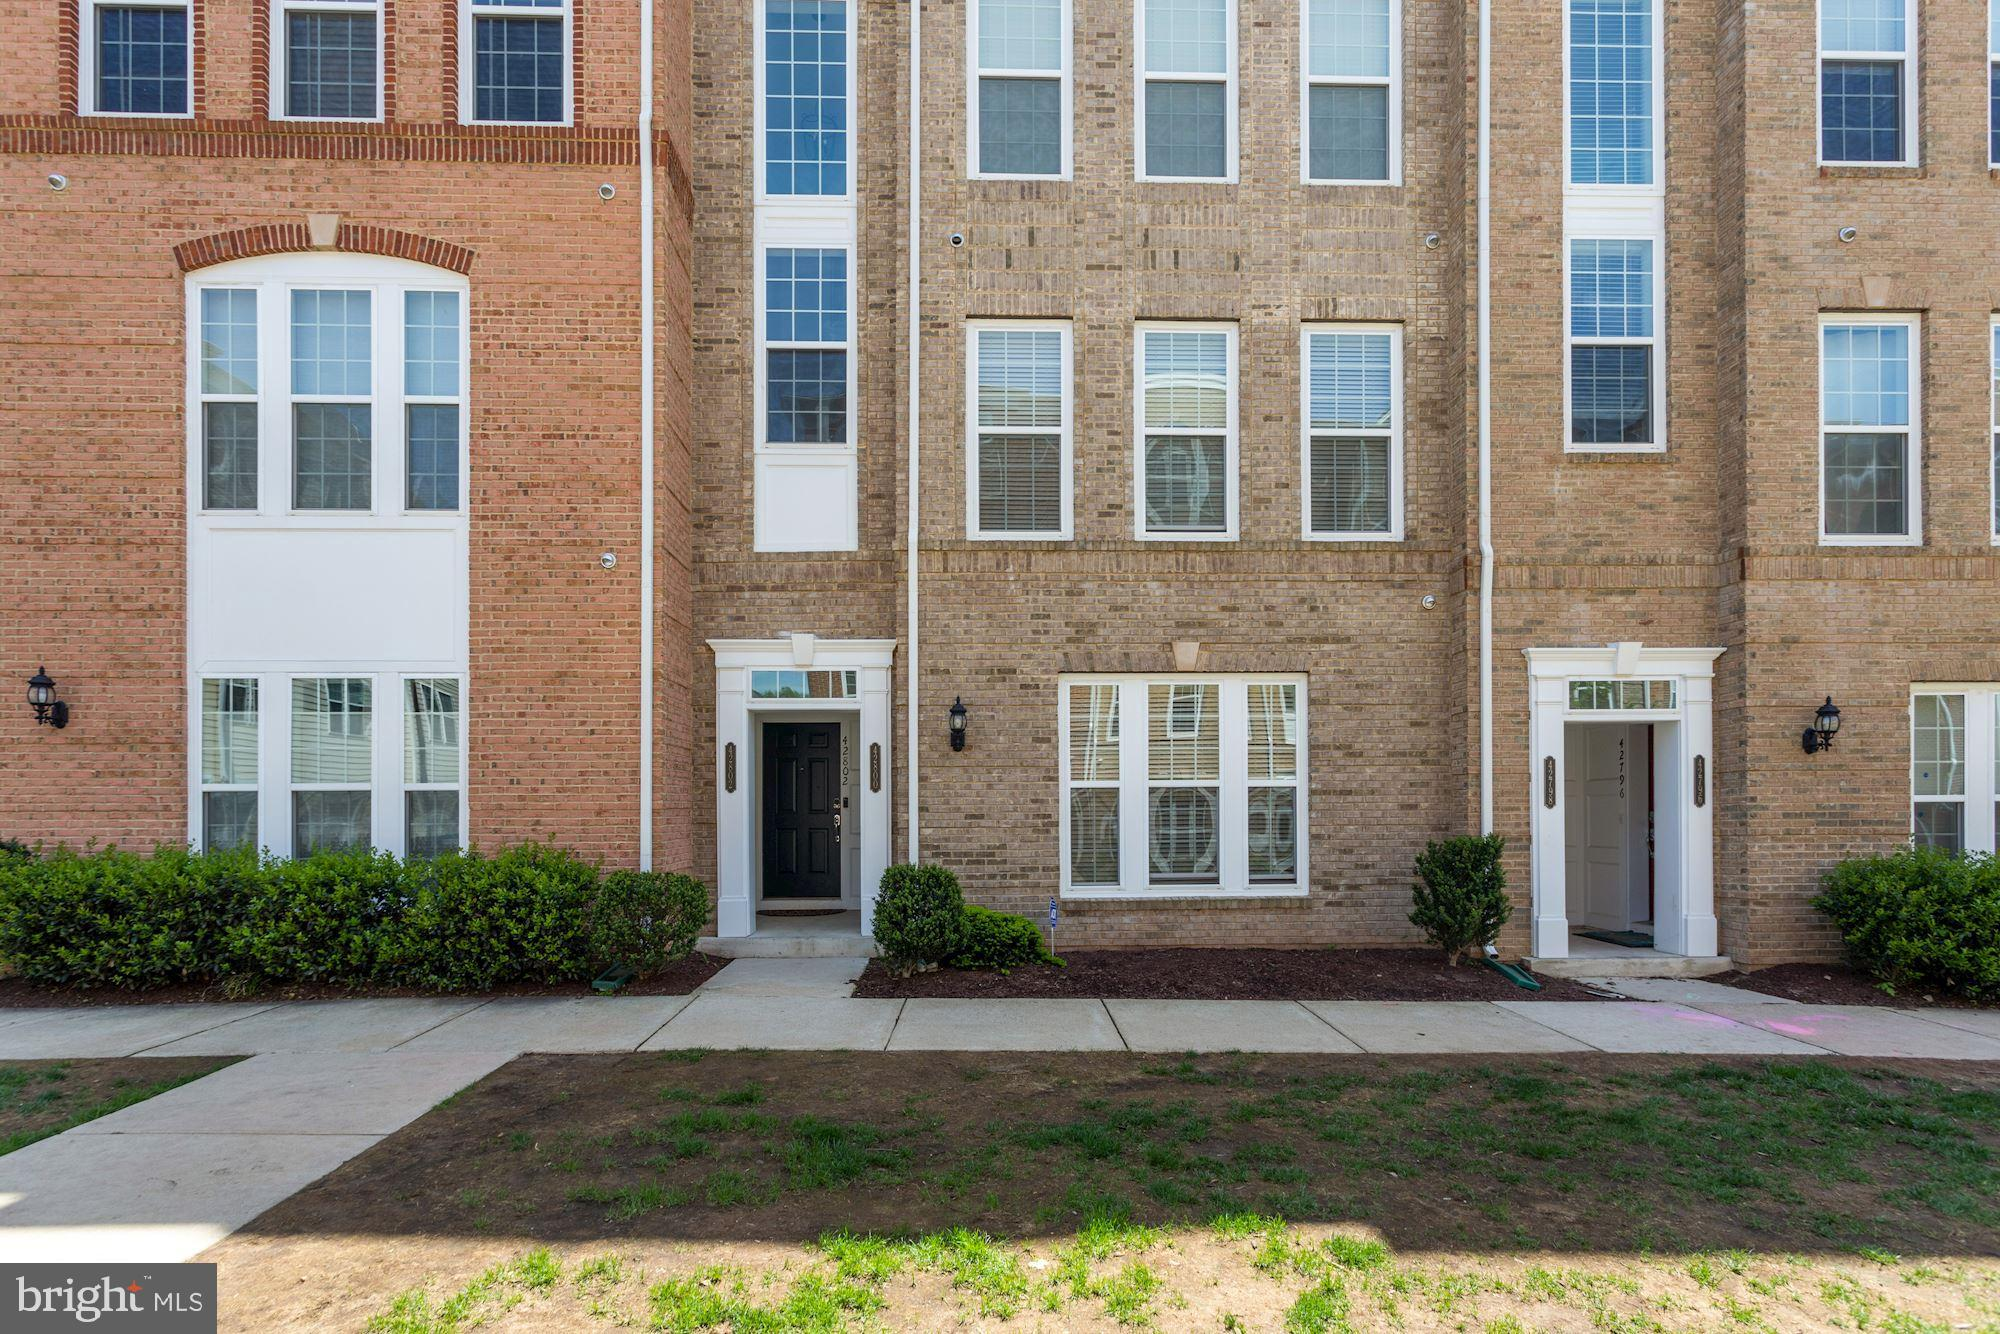 3BR/2.5 BA, townhome style 2 level (lowest two levels in building), brick front, 1-car garage home i